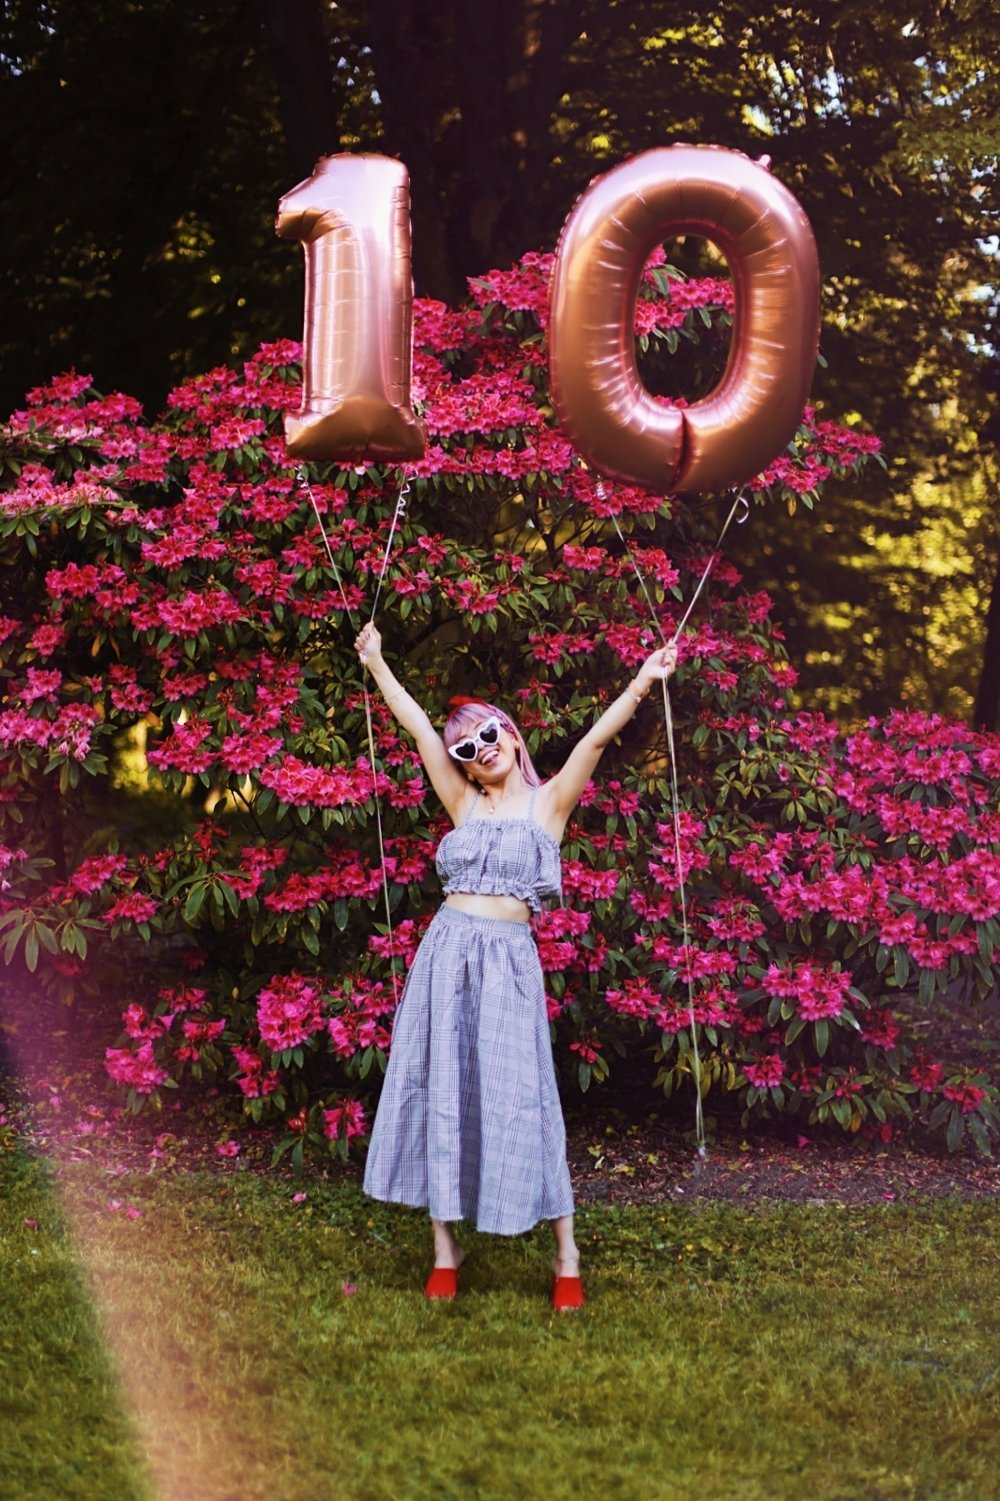 Aika's Love Closet-Seattle Style Life Style Blogger-Japanese-10 Year Anniversary-living in America-what I've learned from Living Abroad-life lessons-pink hair-zero uv heart sunglasses-rose gold balloons-smile 3